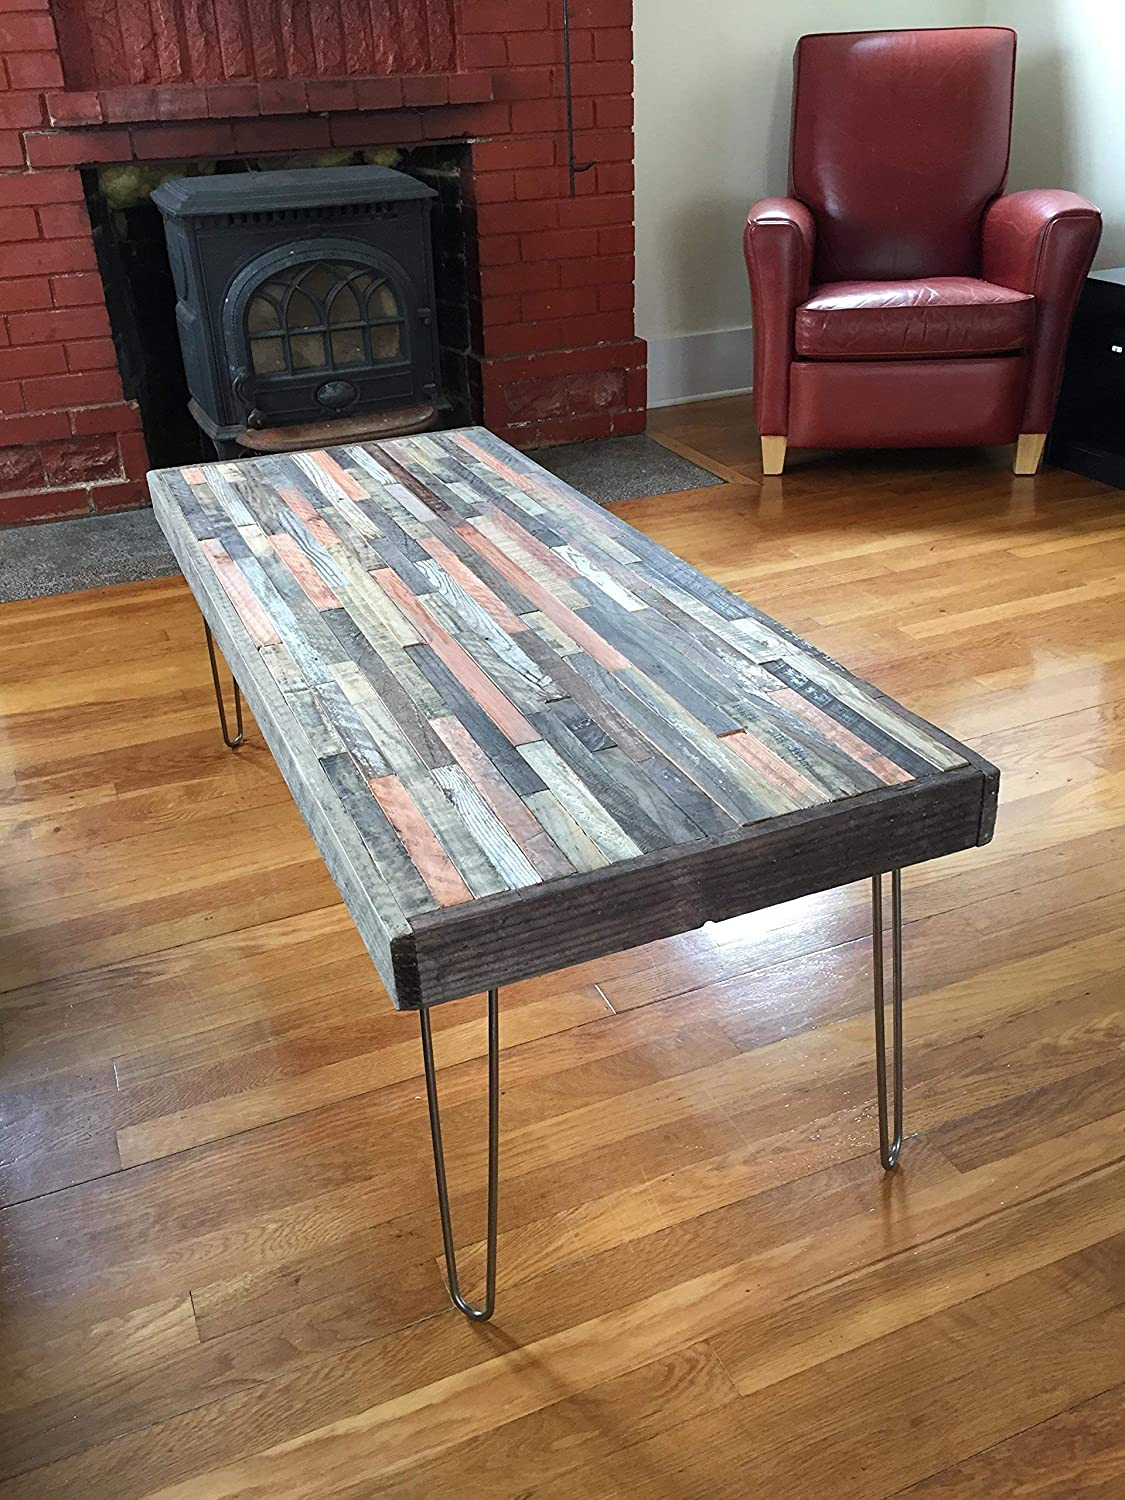 Barn Wood Coffee Table 40 X20 Industrial Furniture Modern Reclaimed Barn Wood Rustic Wood In A Beautiful Mosaic Pattern With Hairpin Legs